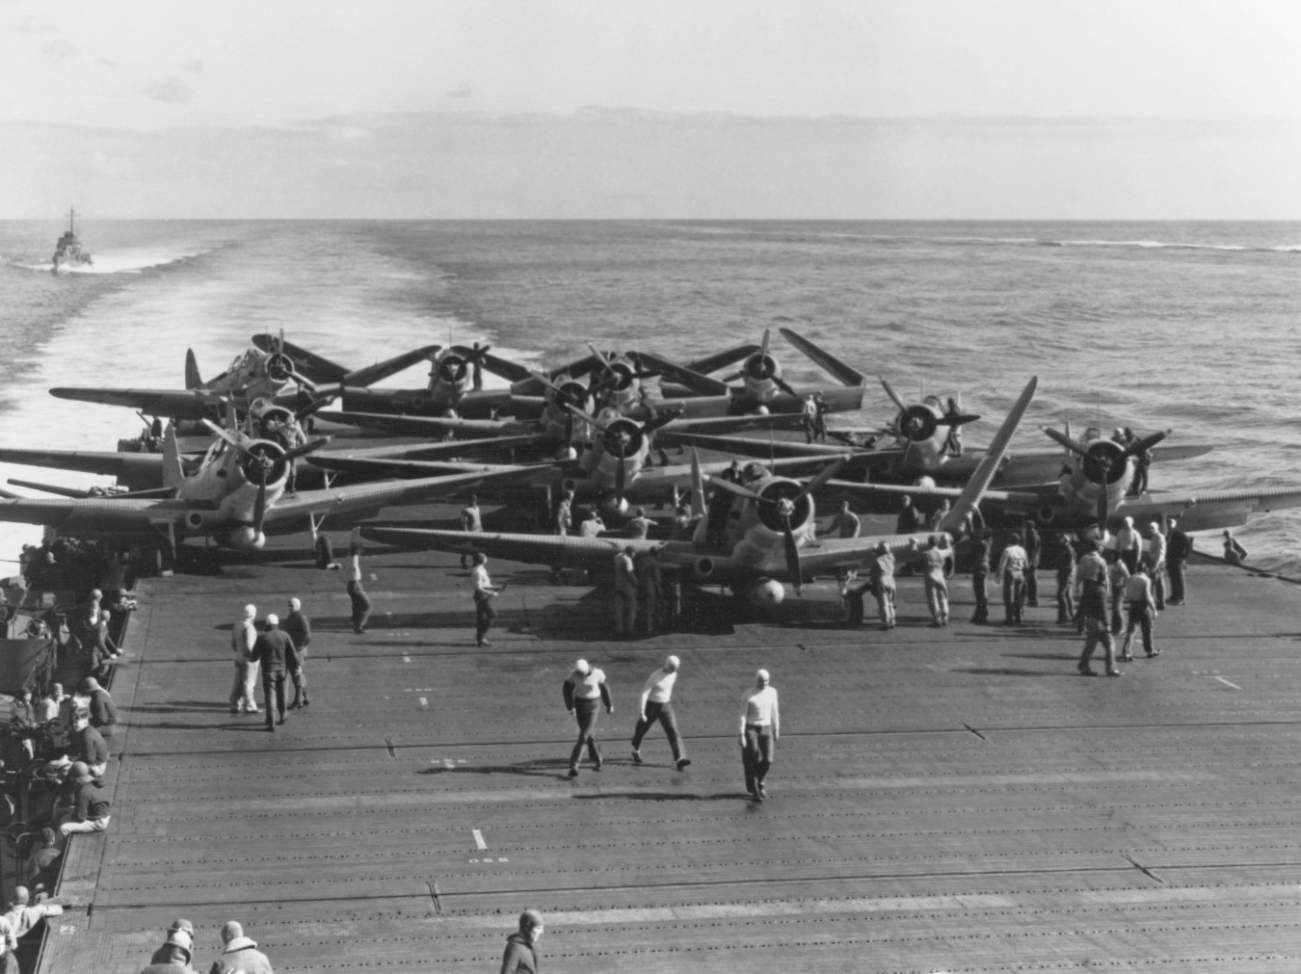 Here's How The Battle Of Midway Crushed The Japanese Empire